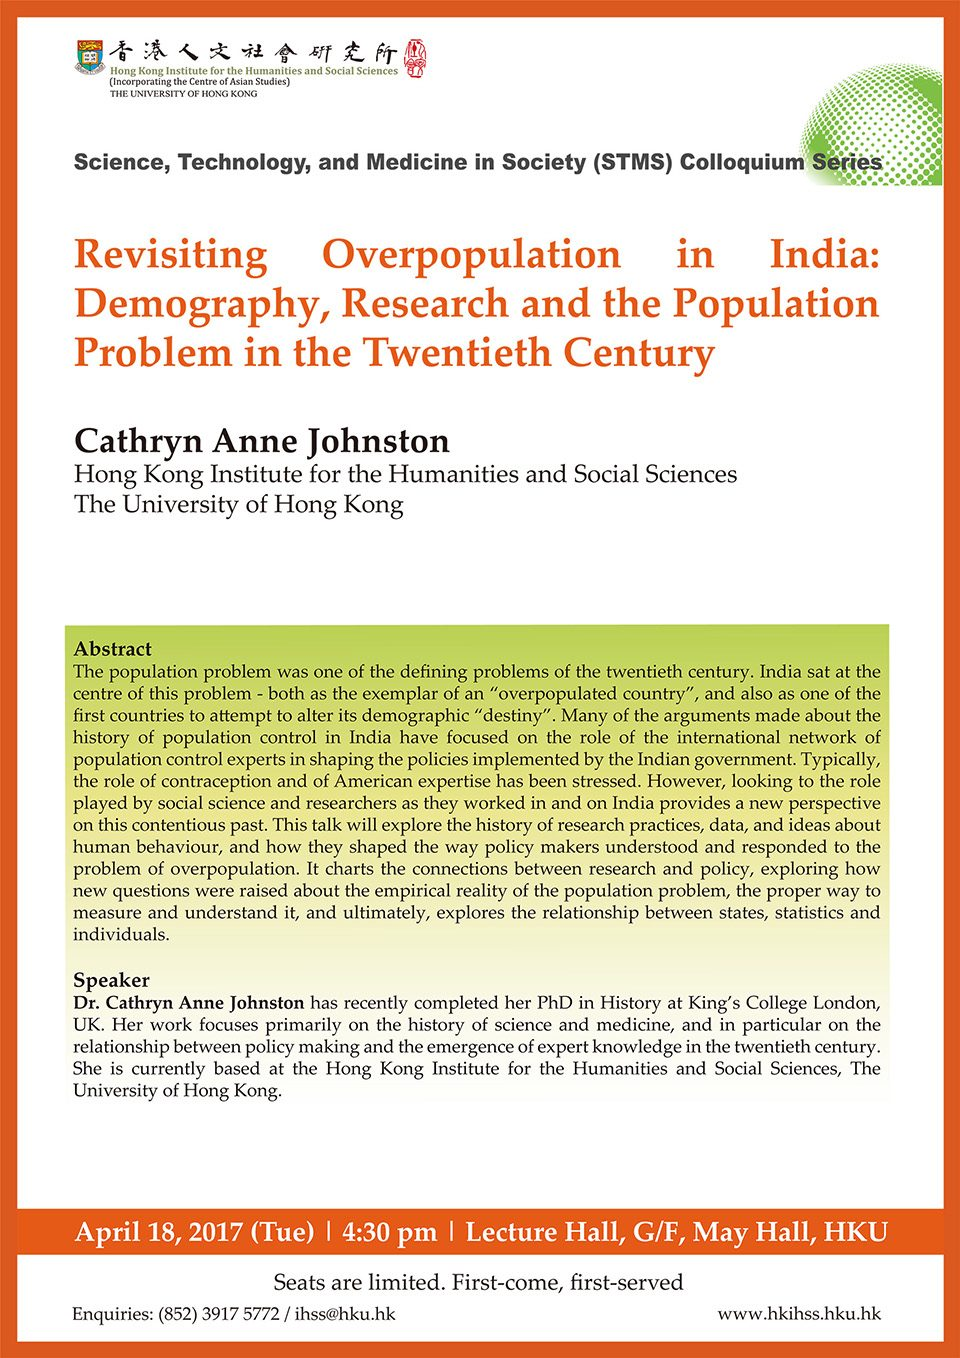 "Science, Technology, and Medicine in Society (STMS) Colloquium Series ""Revisiting Overpopulation in India: Demography, Research and the Population Problem in the Twentieth Century"" by Dr. Cathryn Anne Johnston (April 18, 2017)"